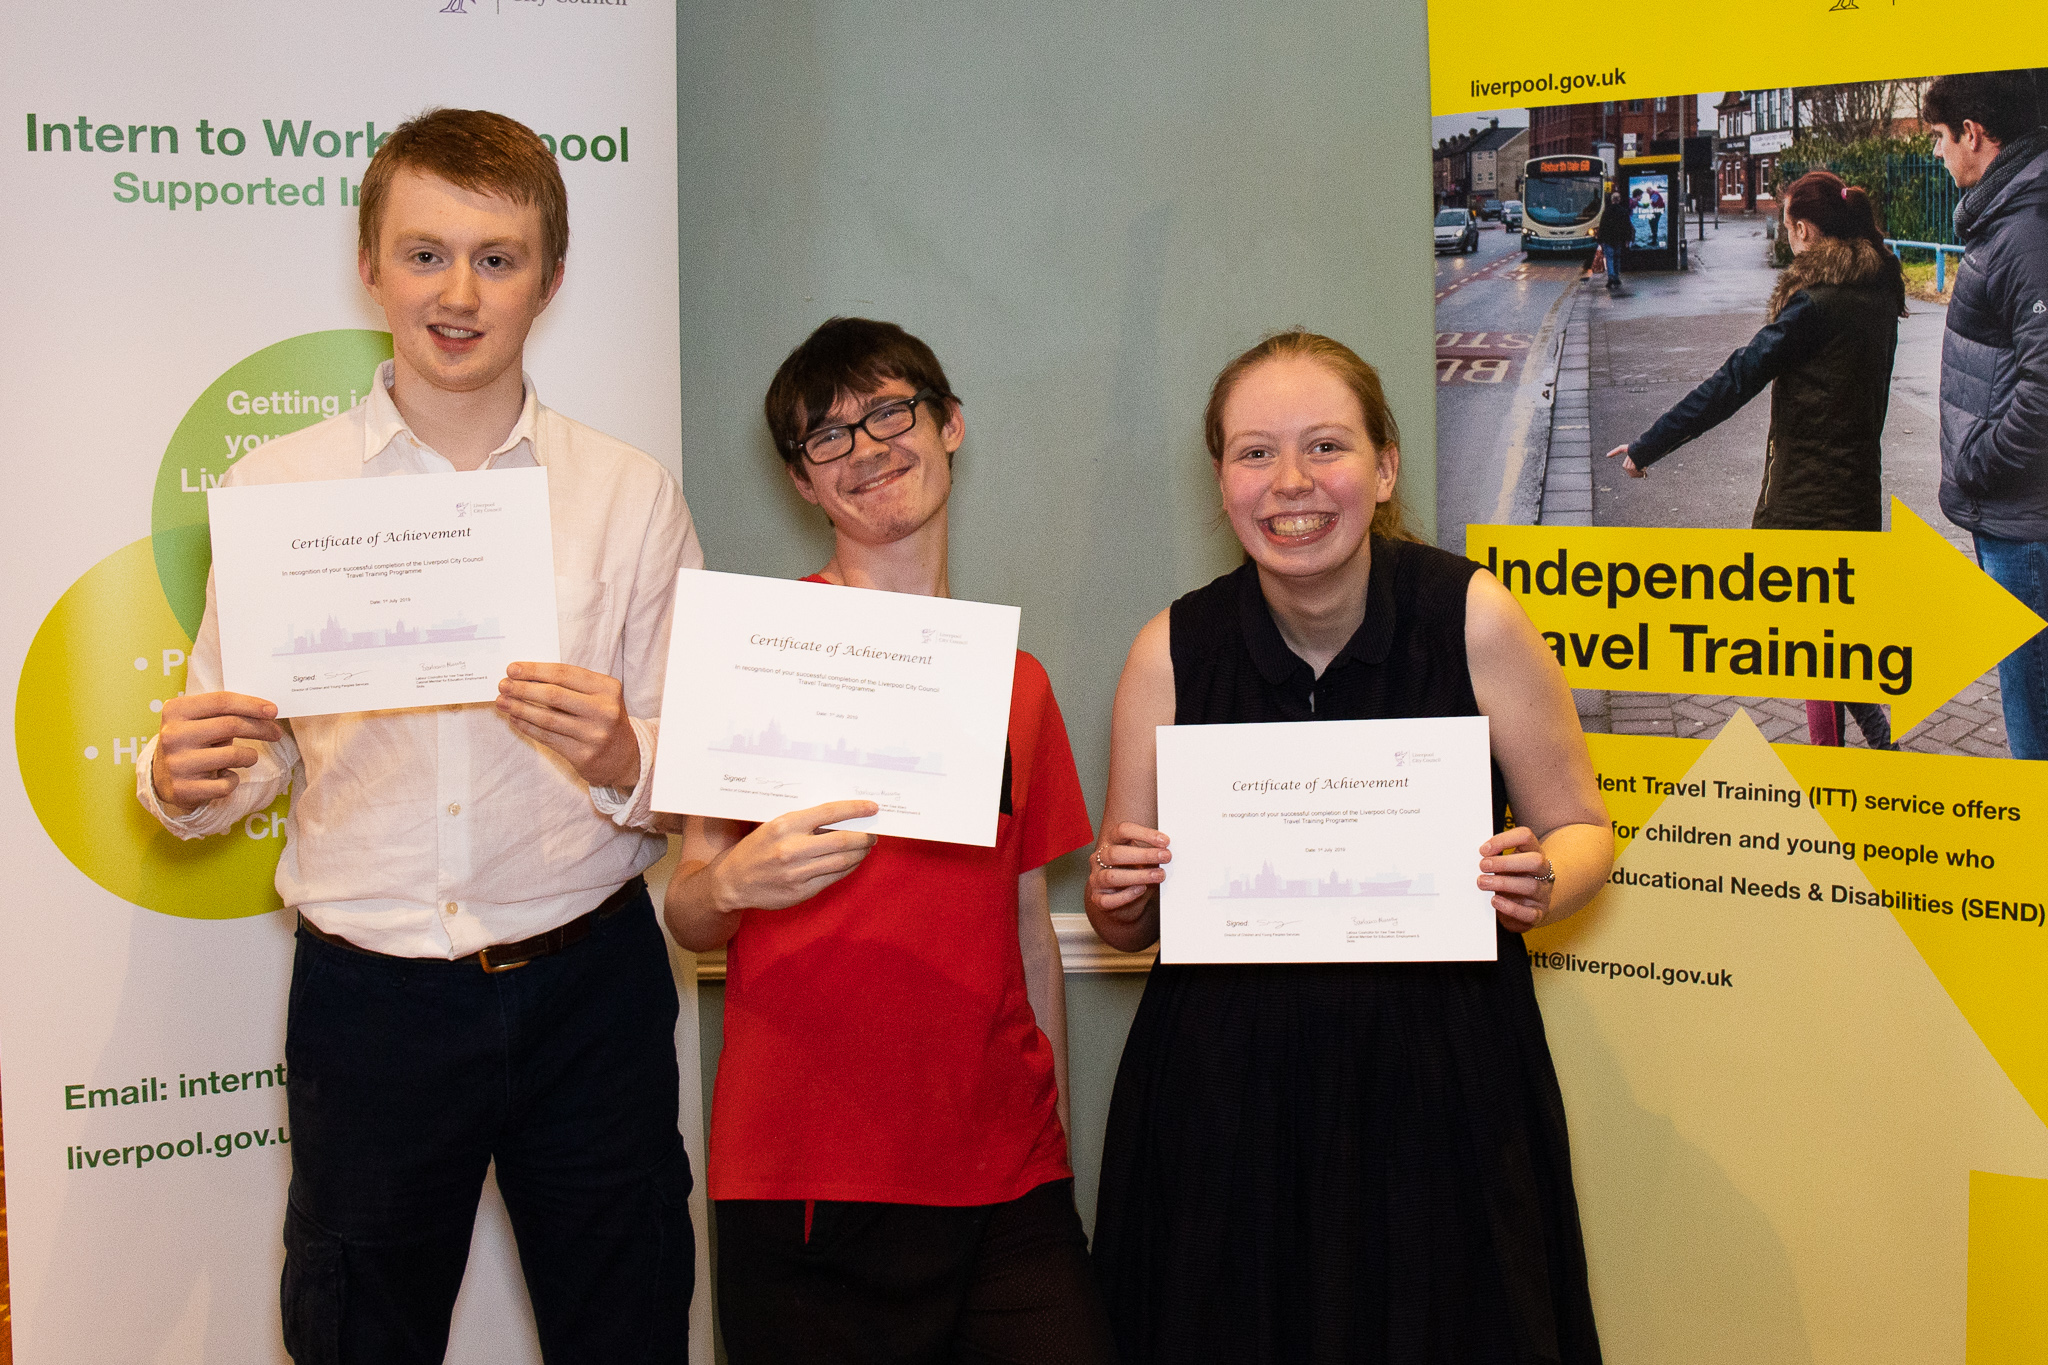 Pupils from Abbot's Lea School with their independent travel training certificates.